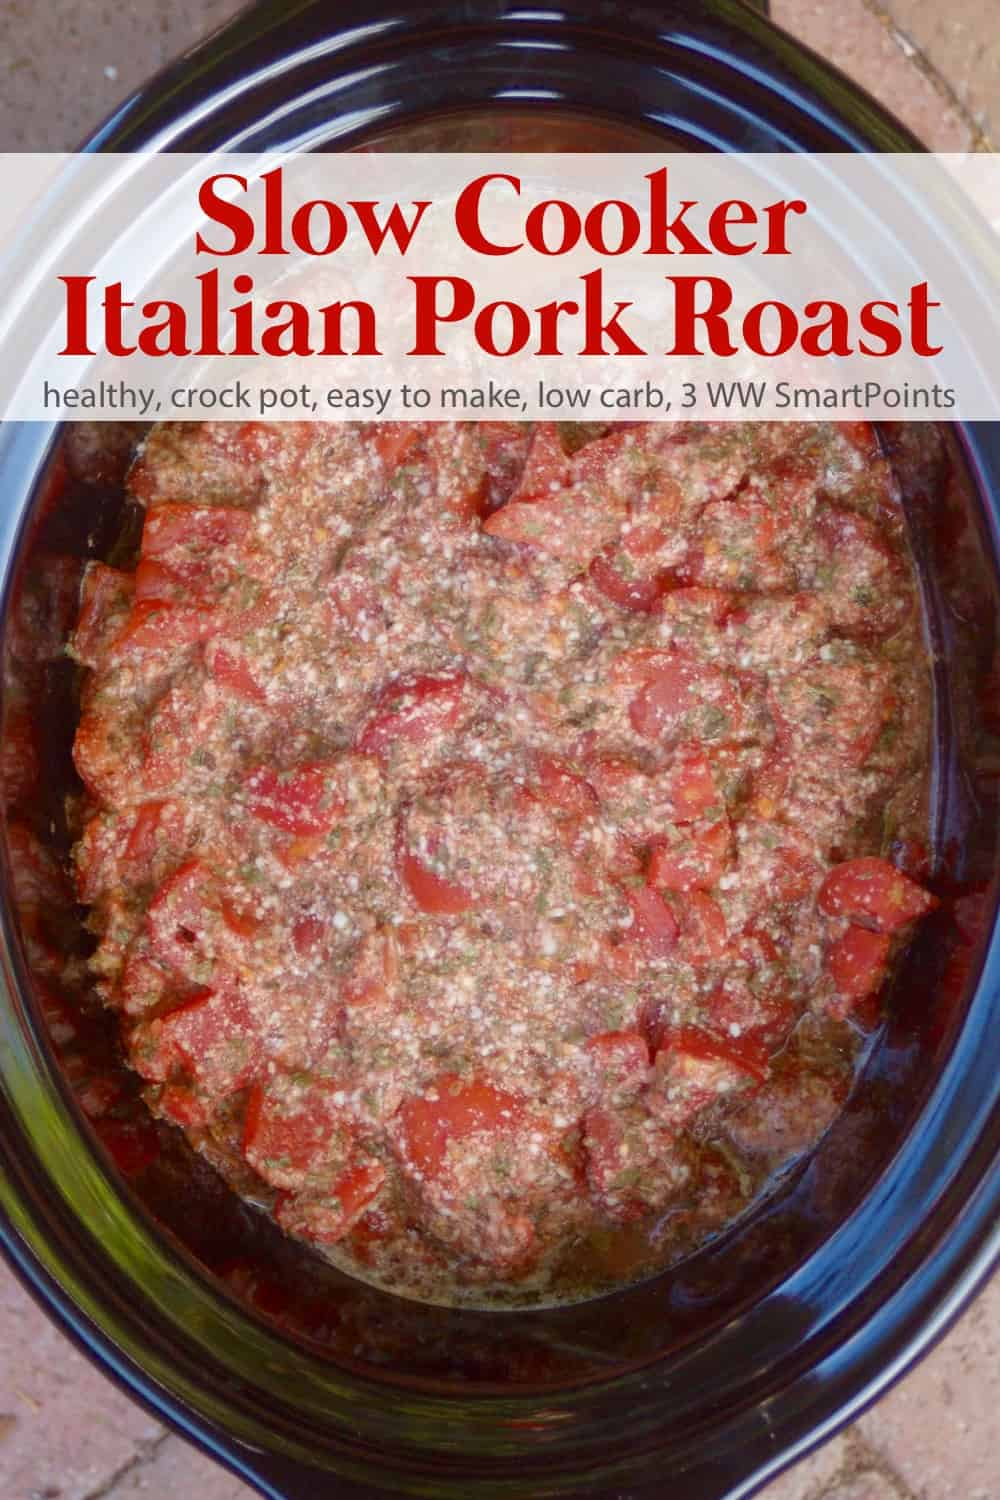 Skinny Slow Cooker Italian Pork Roast - Lean pork simmered in tomatoes, Italian spices and Parmesan until fork tender. Did I mention that the sauce is absolutely delectable? #slowcookeritalianpork #italianpork #pork #slowcooker